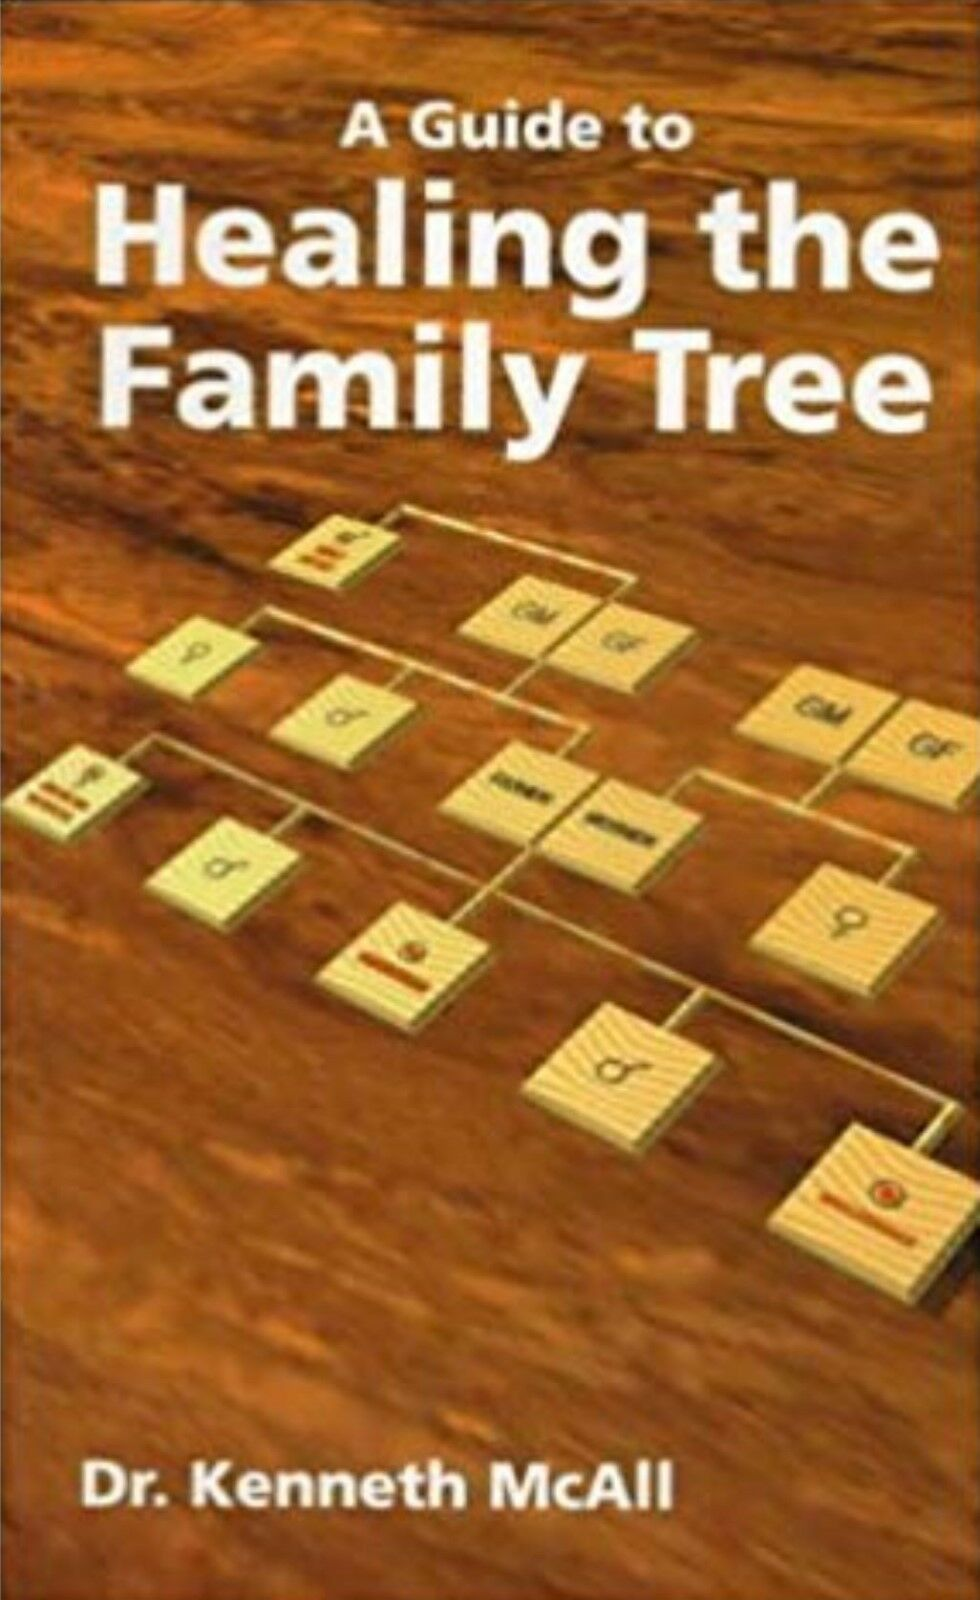 A Guide to Healing the Family Tree -book by Dr. Kenneth McAll - Paperback